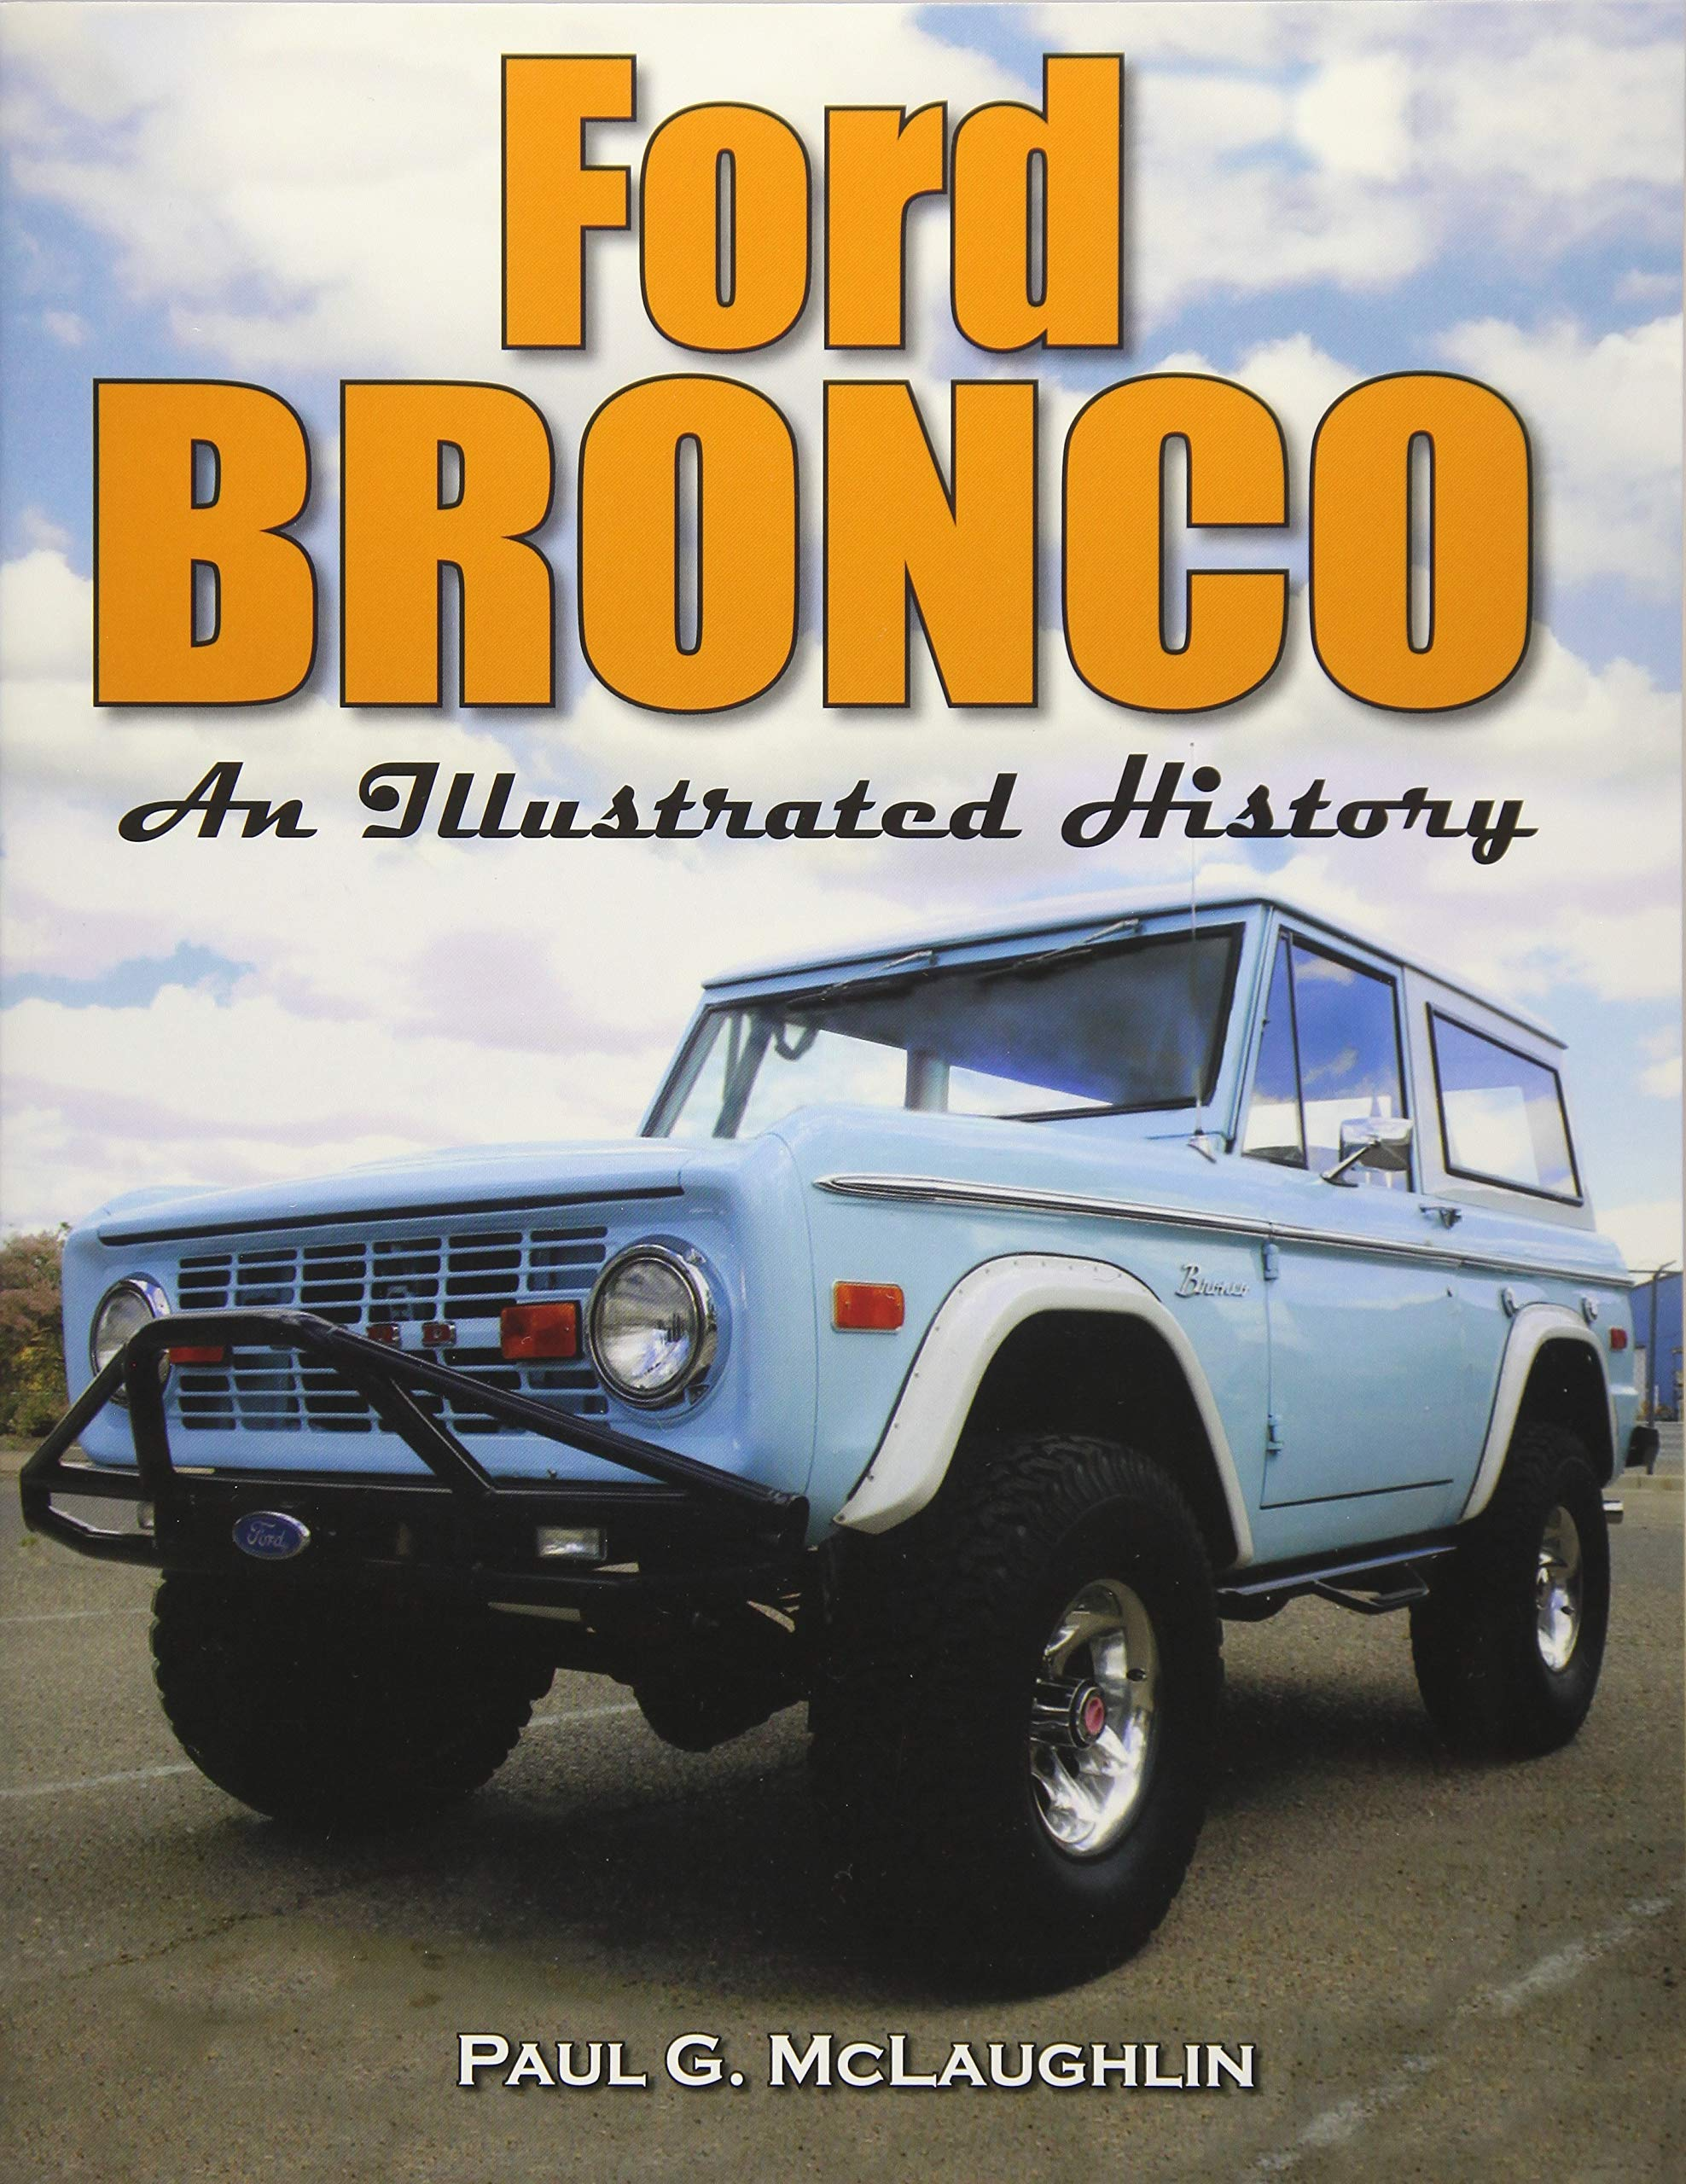 Ford Bronco: An Illustrated History pdf epub